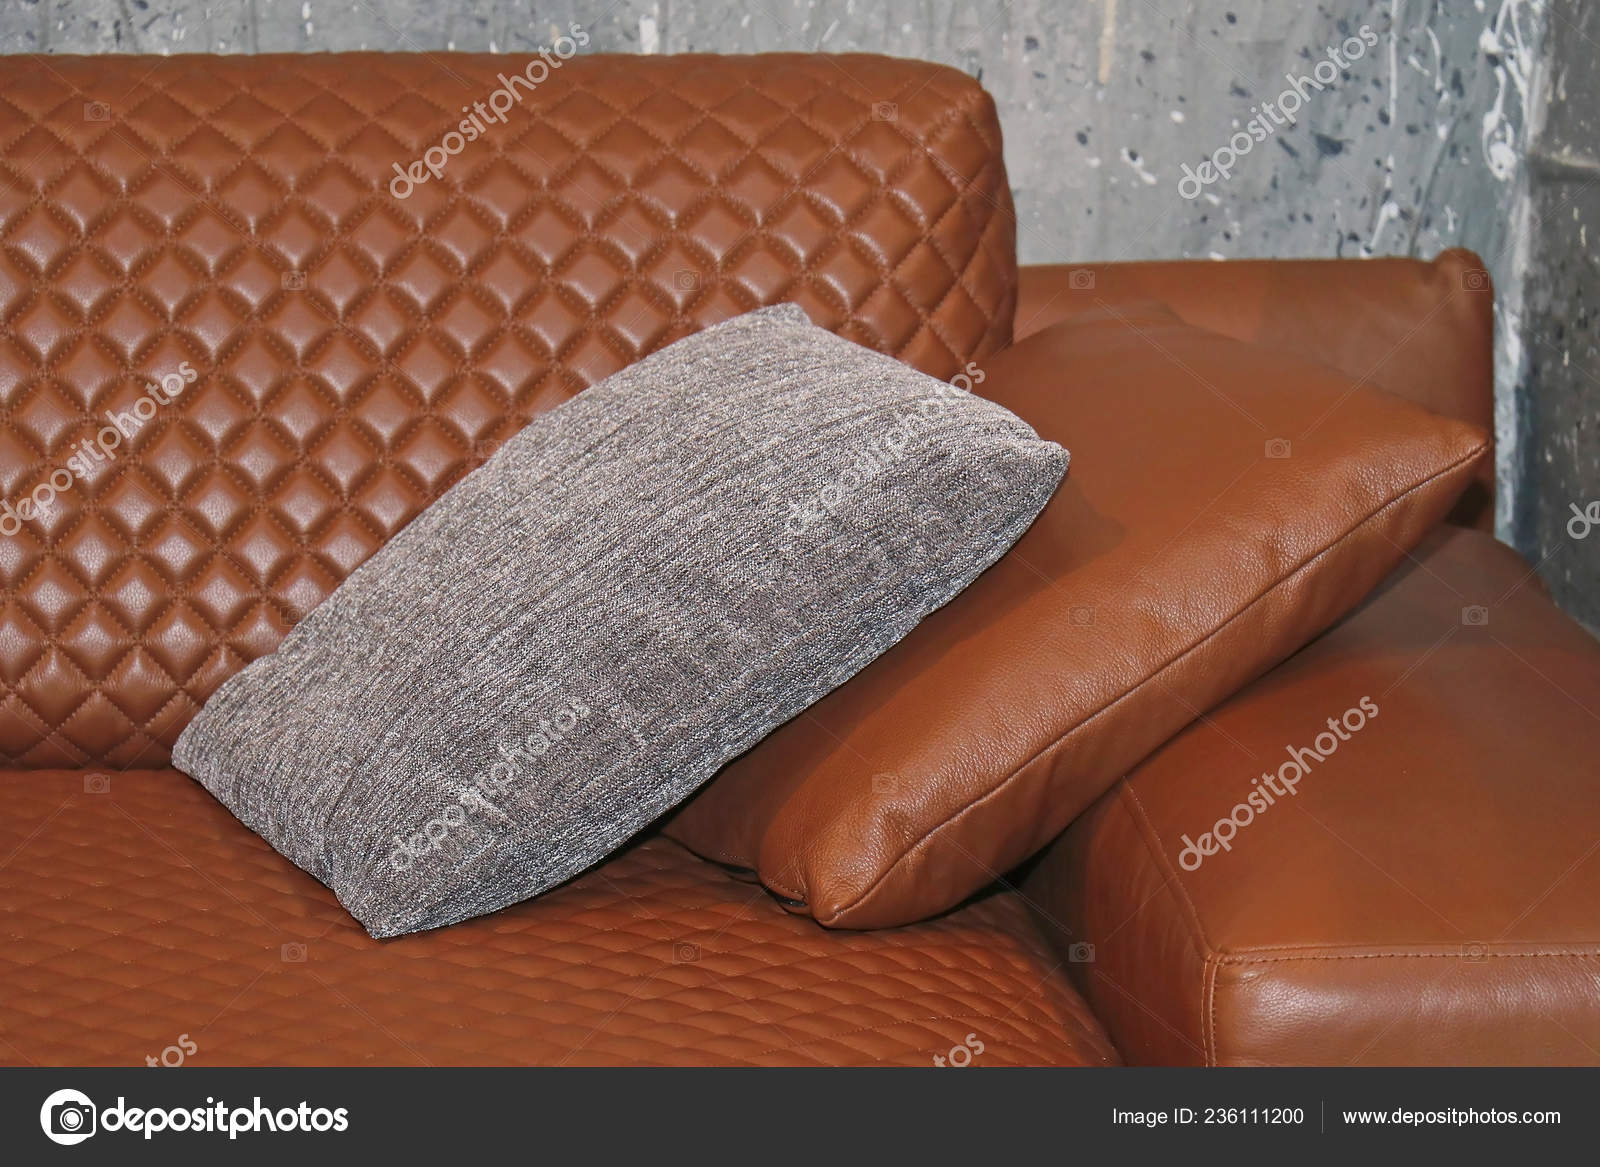 Decorative Pillows For Brown Leather Sofa  from st4.depositphotos.com